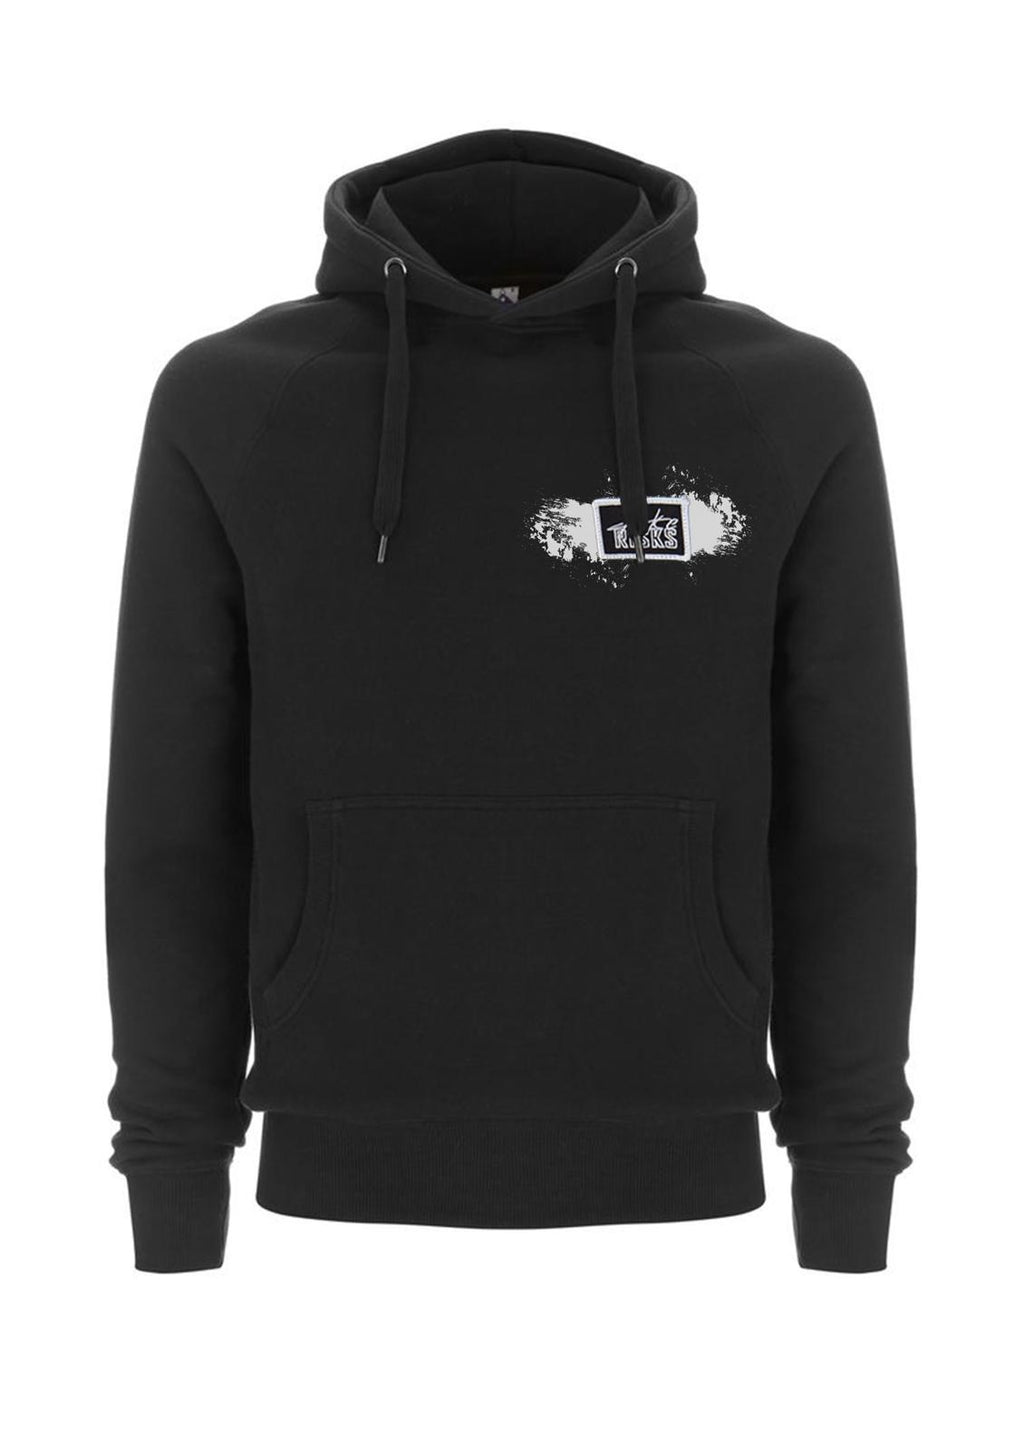 "Take Risks ""Graffiti"" Black Hoodie"